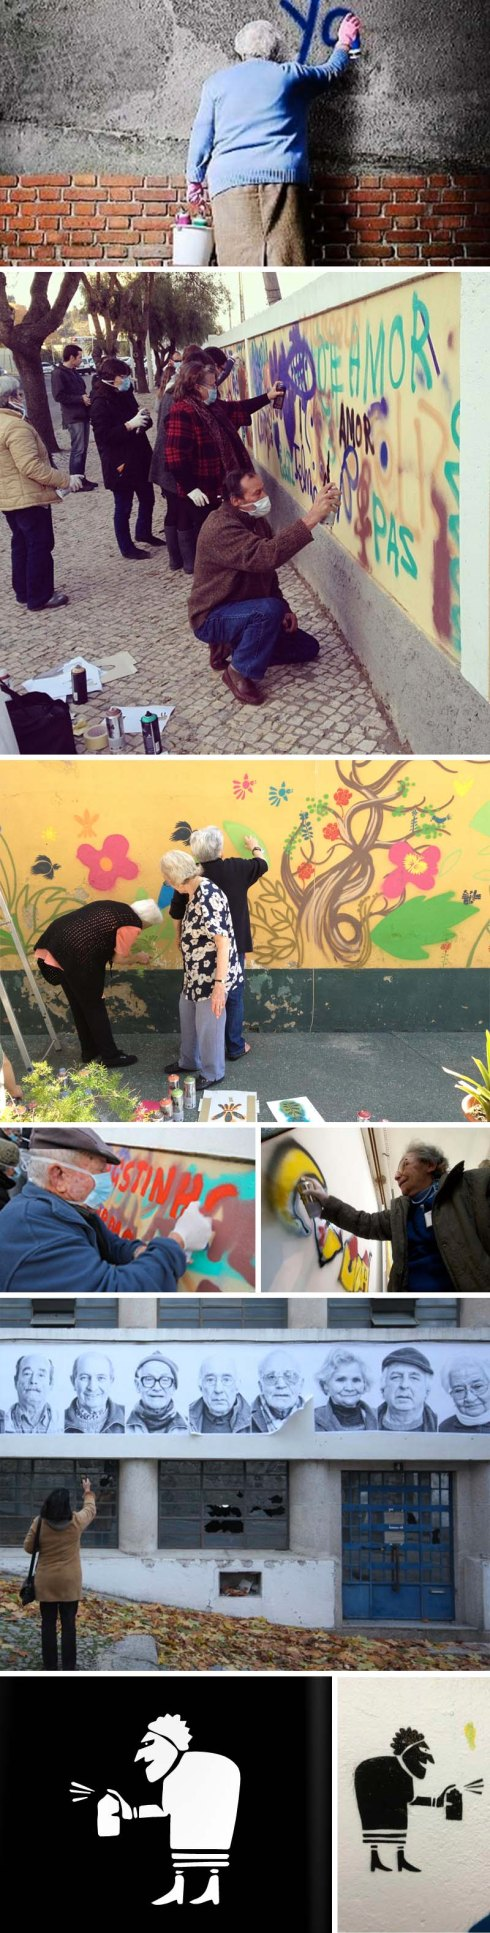 LATA 65, project by Wool and Lara Seixo Rodrigues to provide quality of life and creativity to the elderly with street art, Lisbon